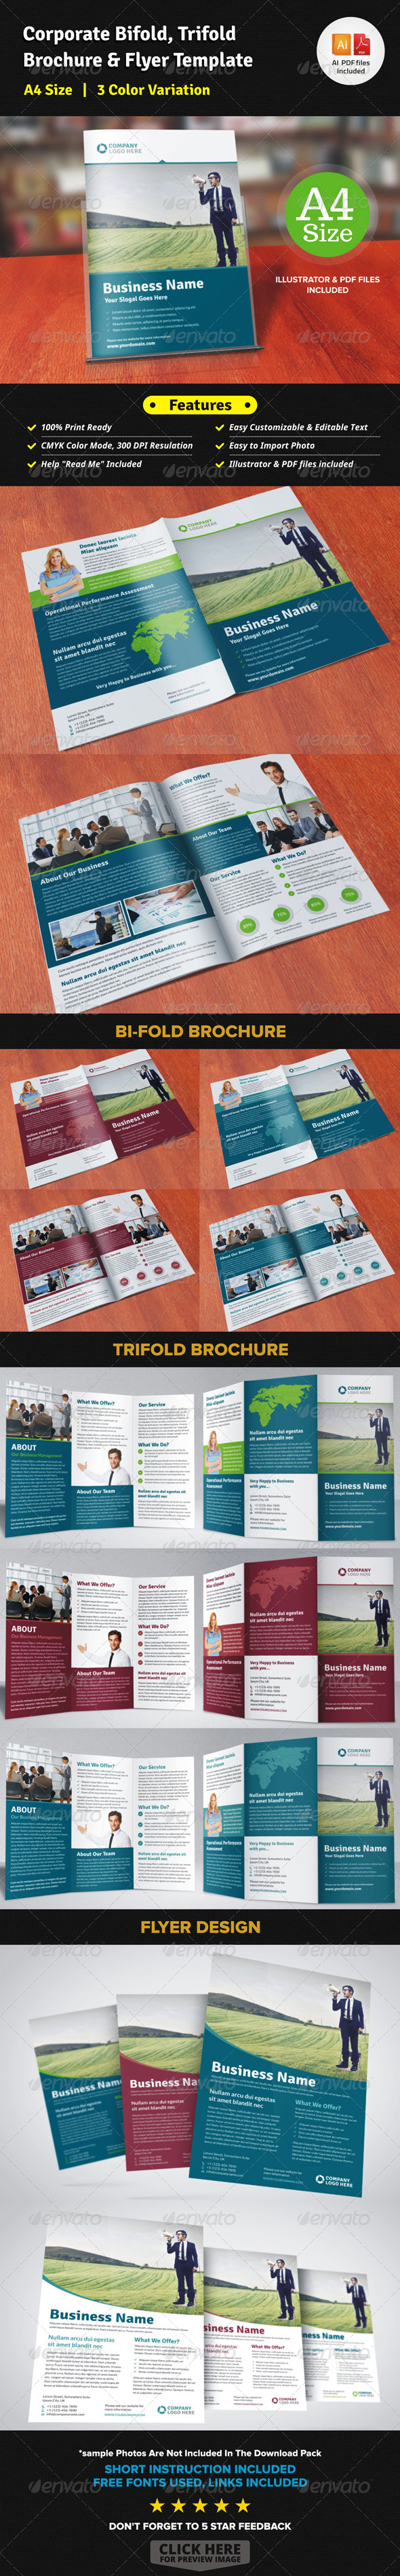 GraphicRiver Corporate Bifold Trifold Brochure & Flyer Templat 7574286